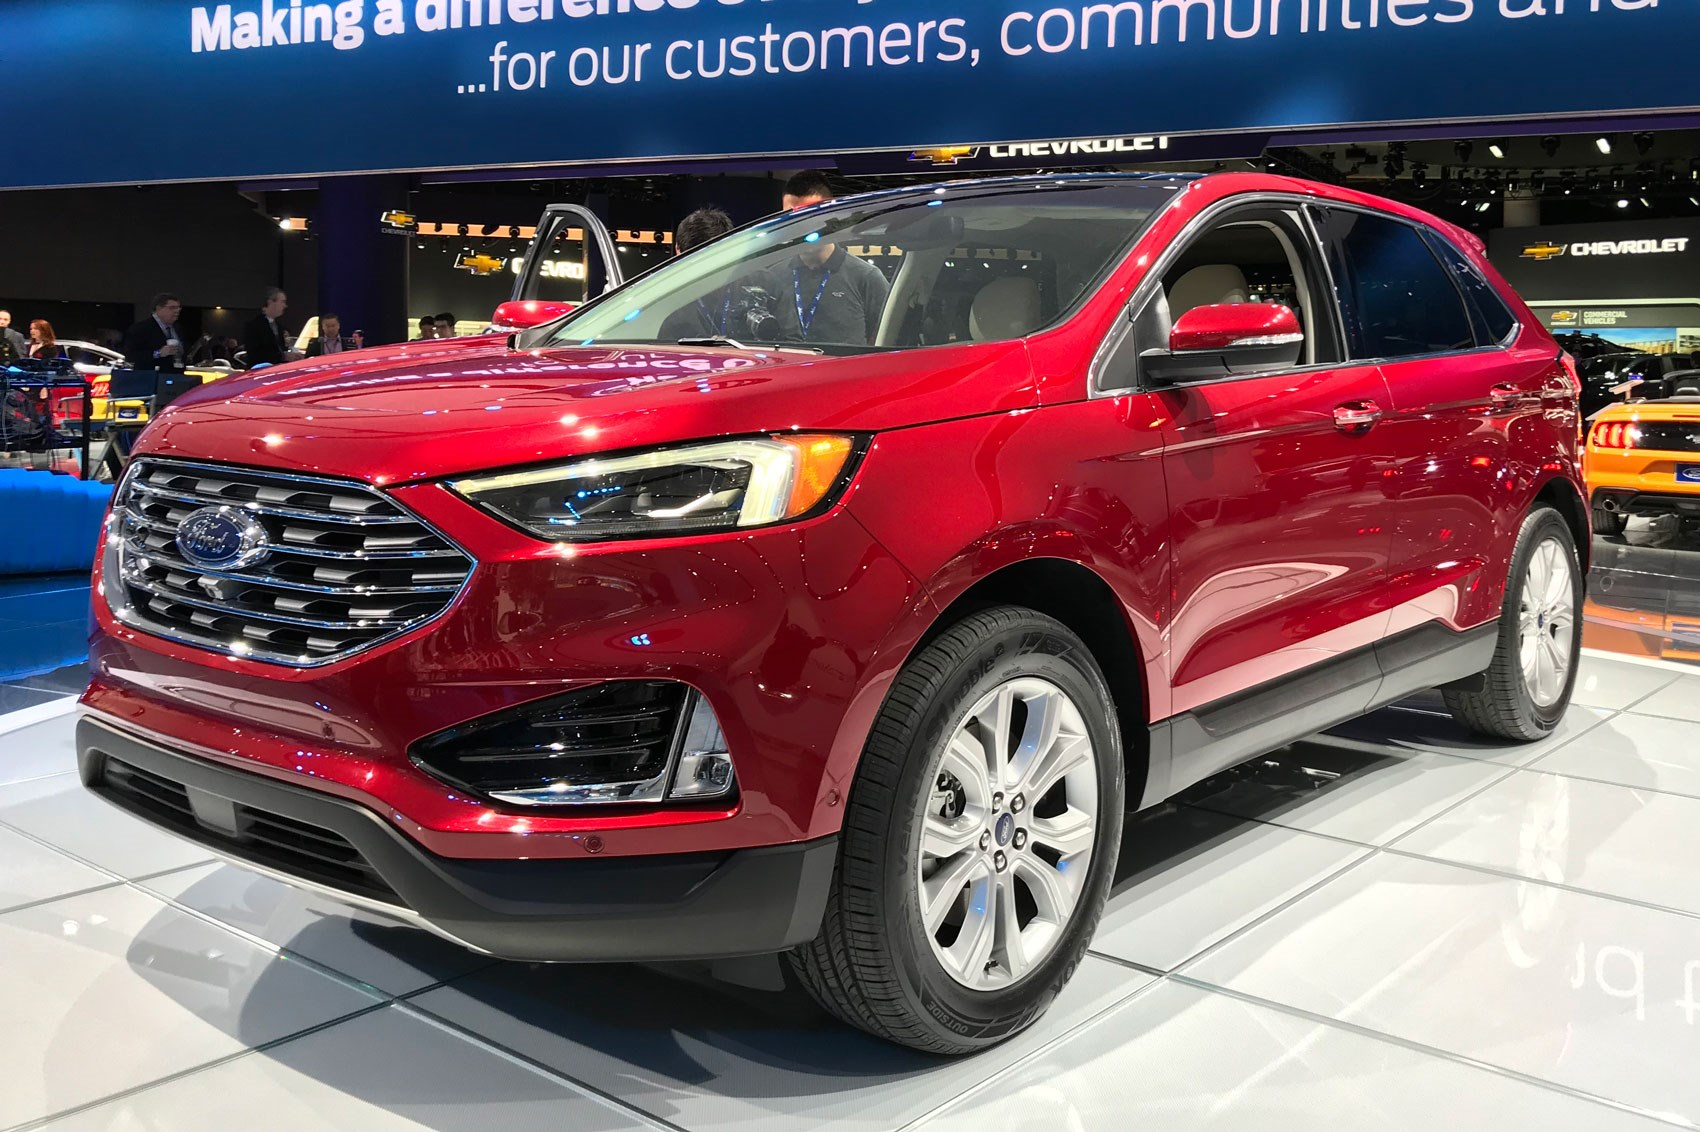 new ford edge updated suv arrives at geneva 2018 car. Black Bedroom Furniture Sets. Home Design Ideas